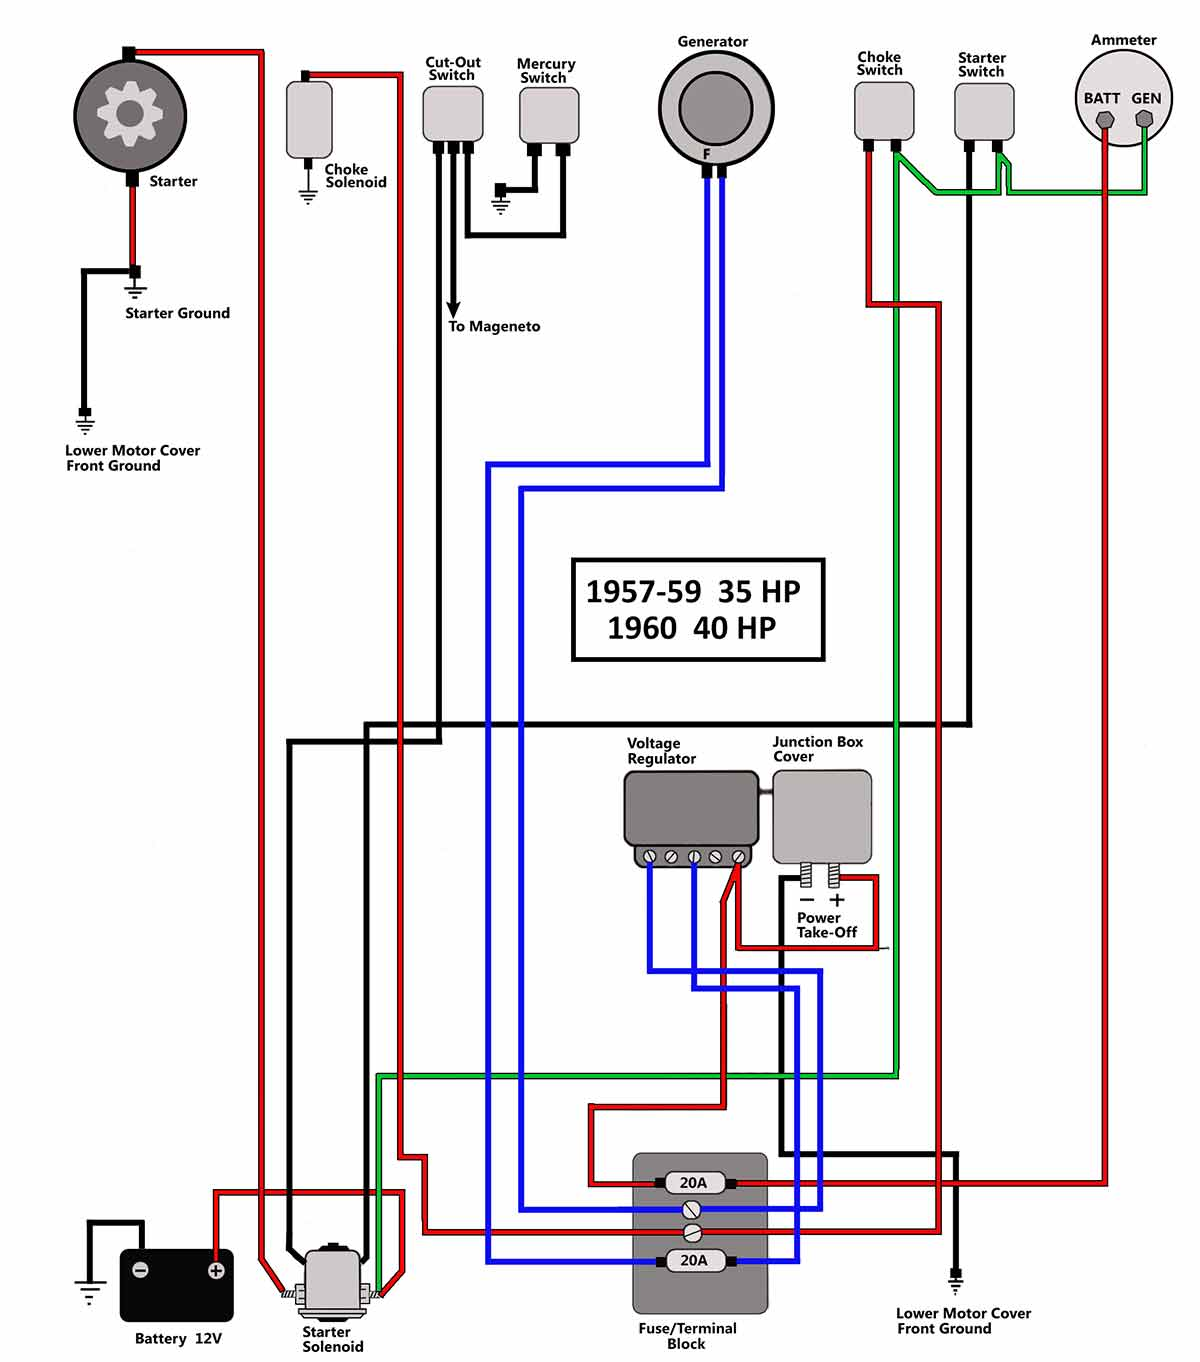 40 Hp Evinrude Wiring Diagram - Wiring Diagram Database